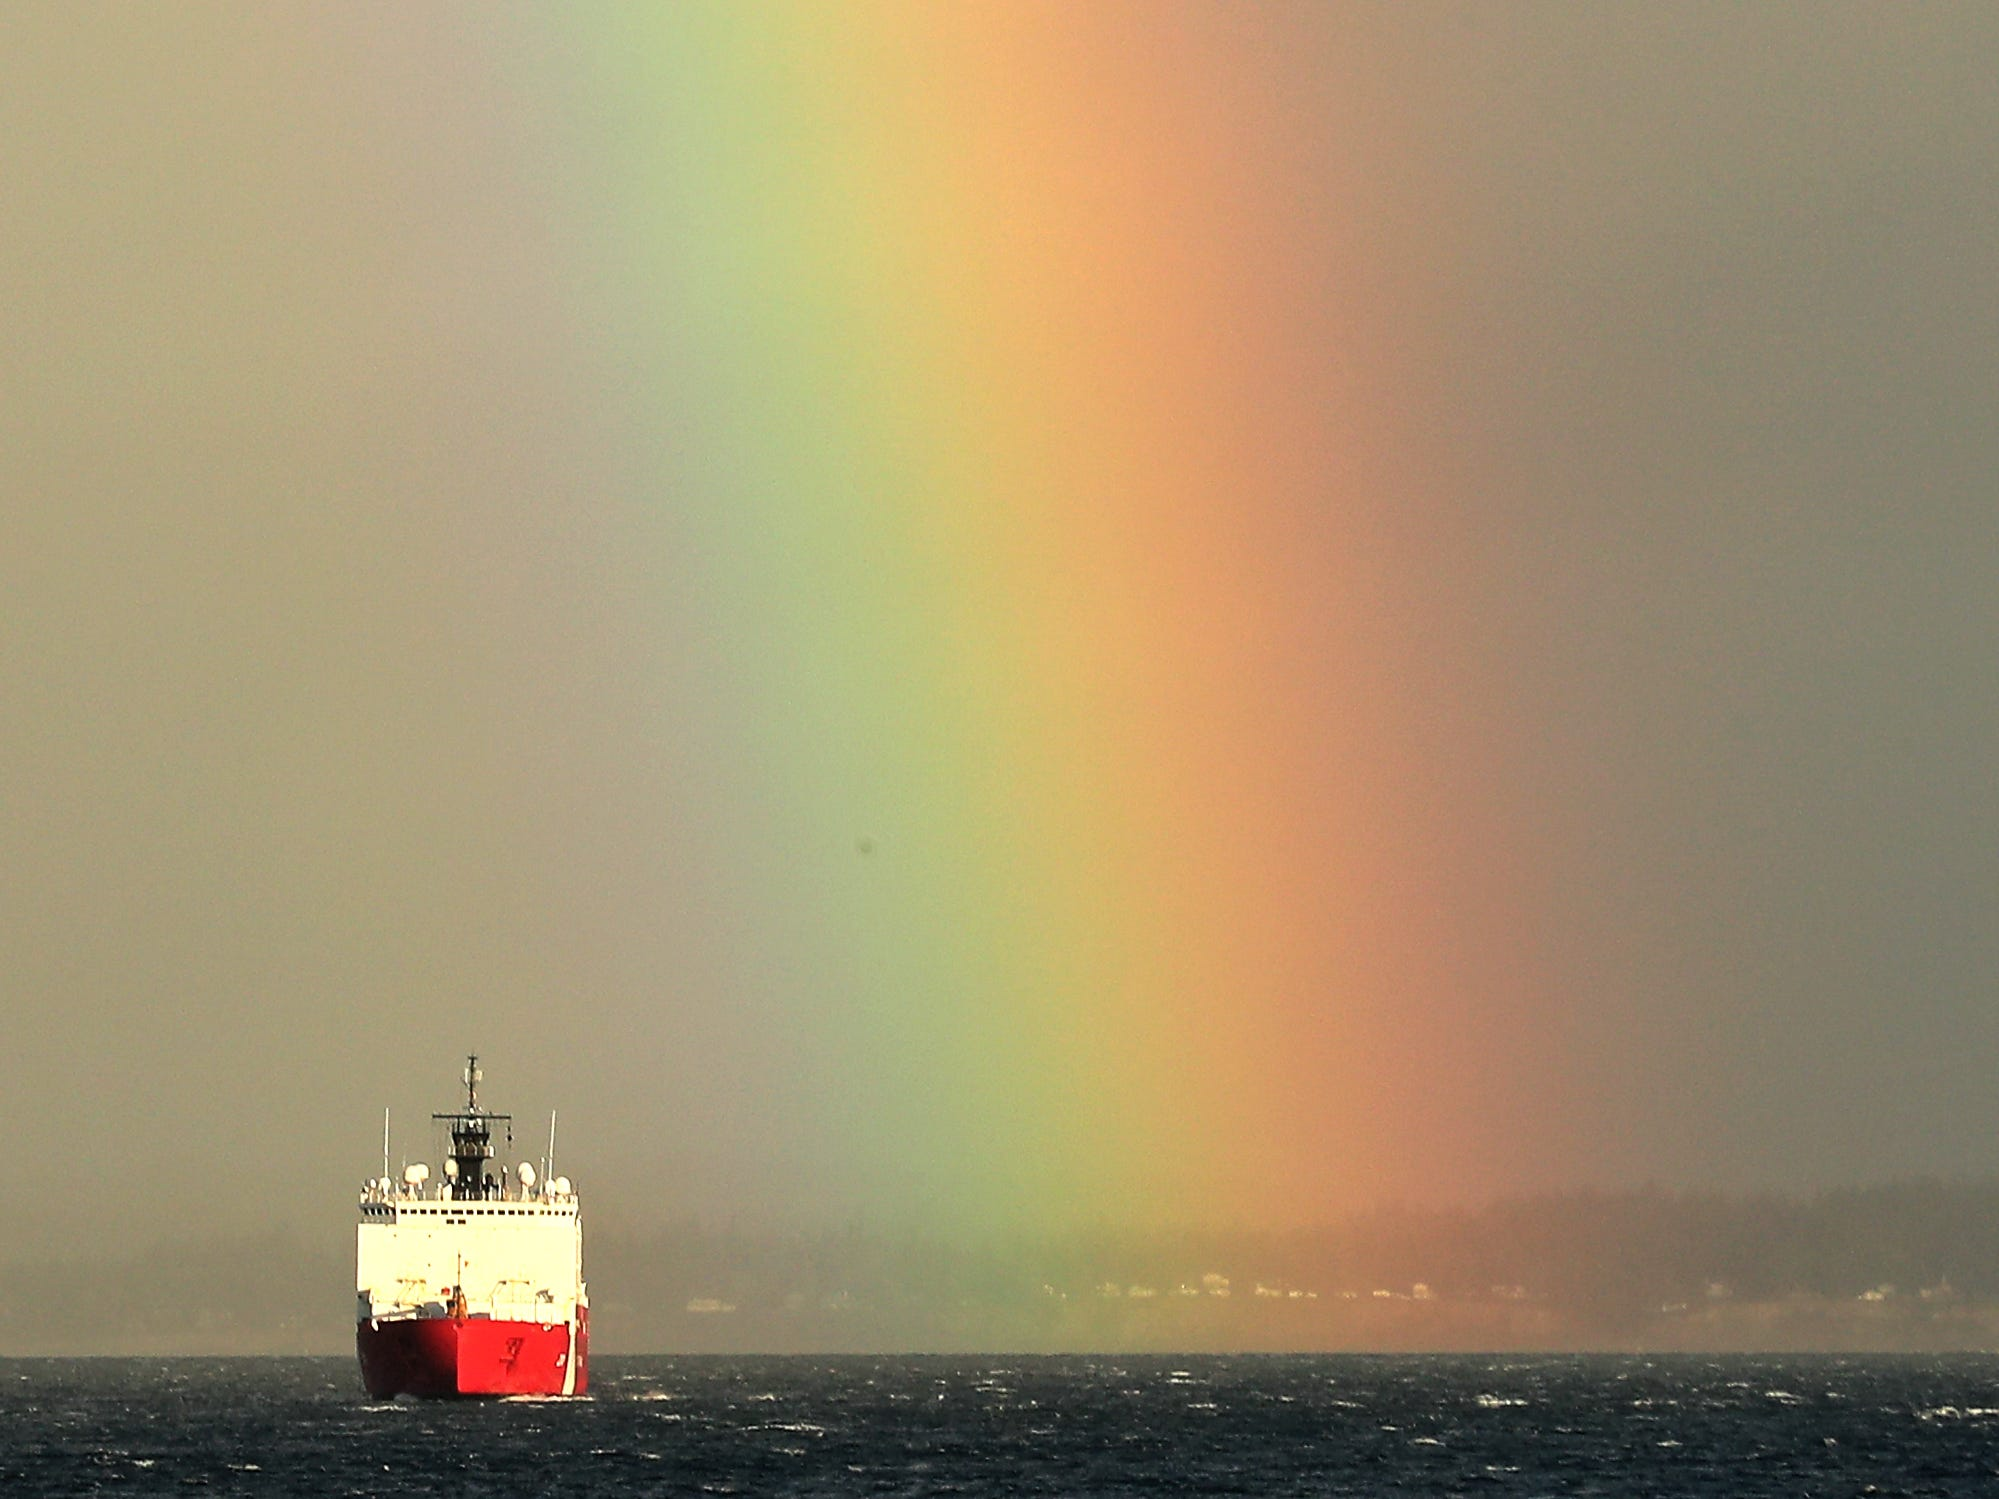 The US Coast Guard Cutter Healy moves through the choppy seas and passes the end of a rainbow as seen from M/V Puyallup between Bainbridge Island and Seattle on Friday, January 4, 2019.